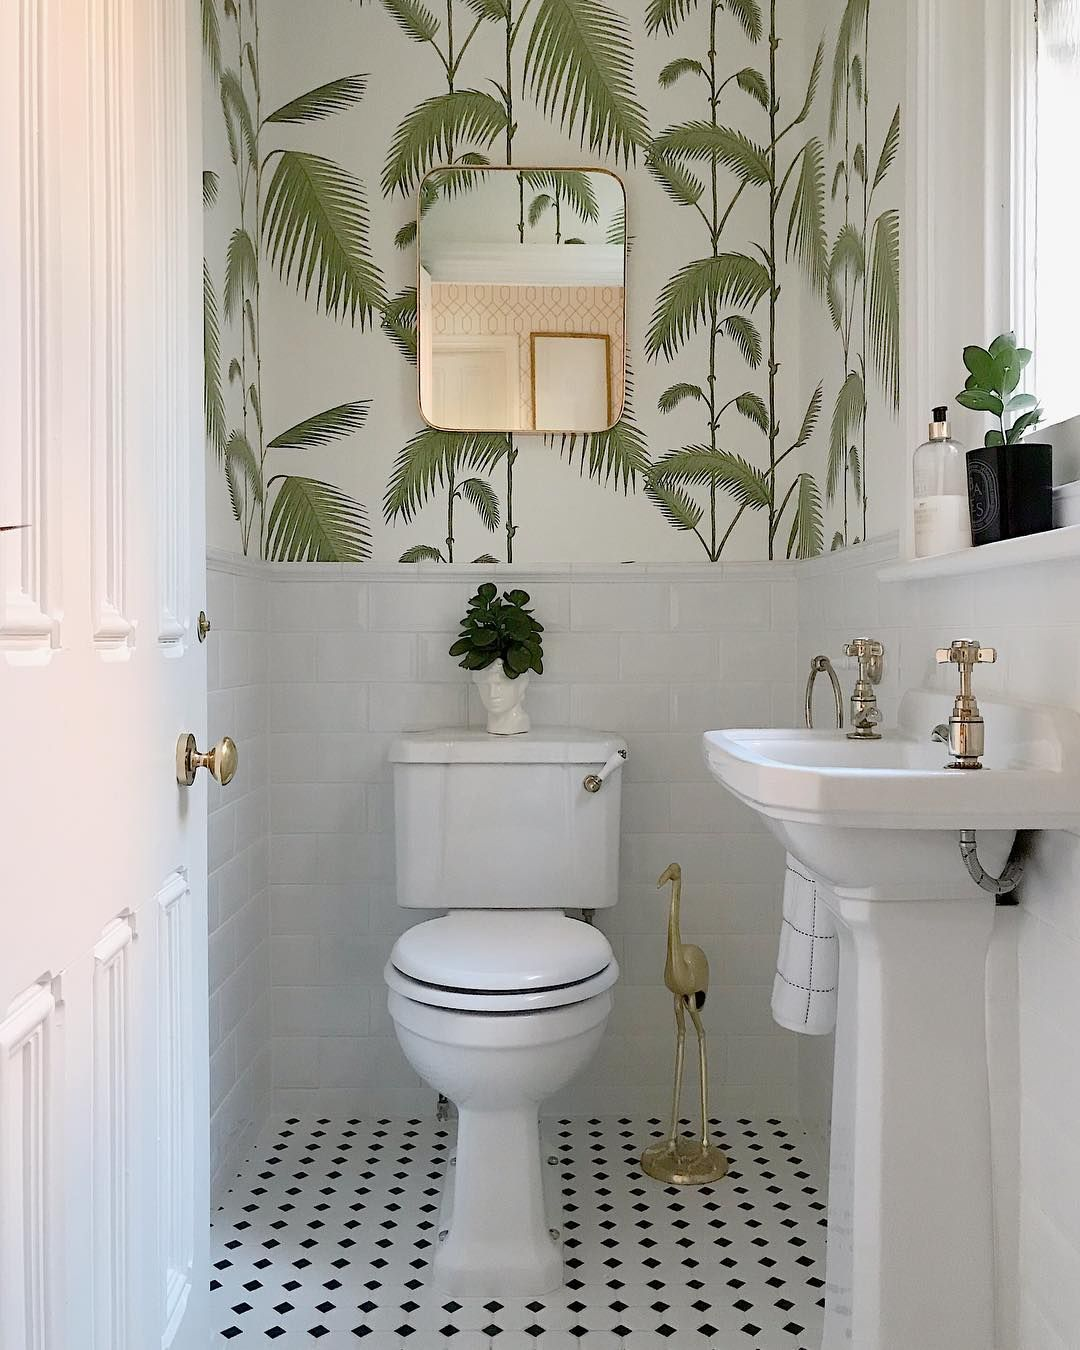 A Beautiful White Bathroom With Gold Accessories And Botanical Wallpaper To Add Character Bathro Bathroom Wallpaper Modern Downstairs Toilet Wallpaper Toilet